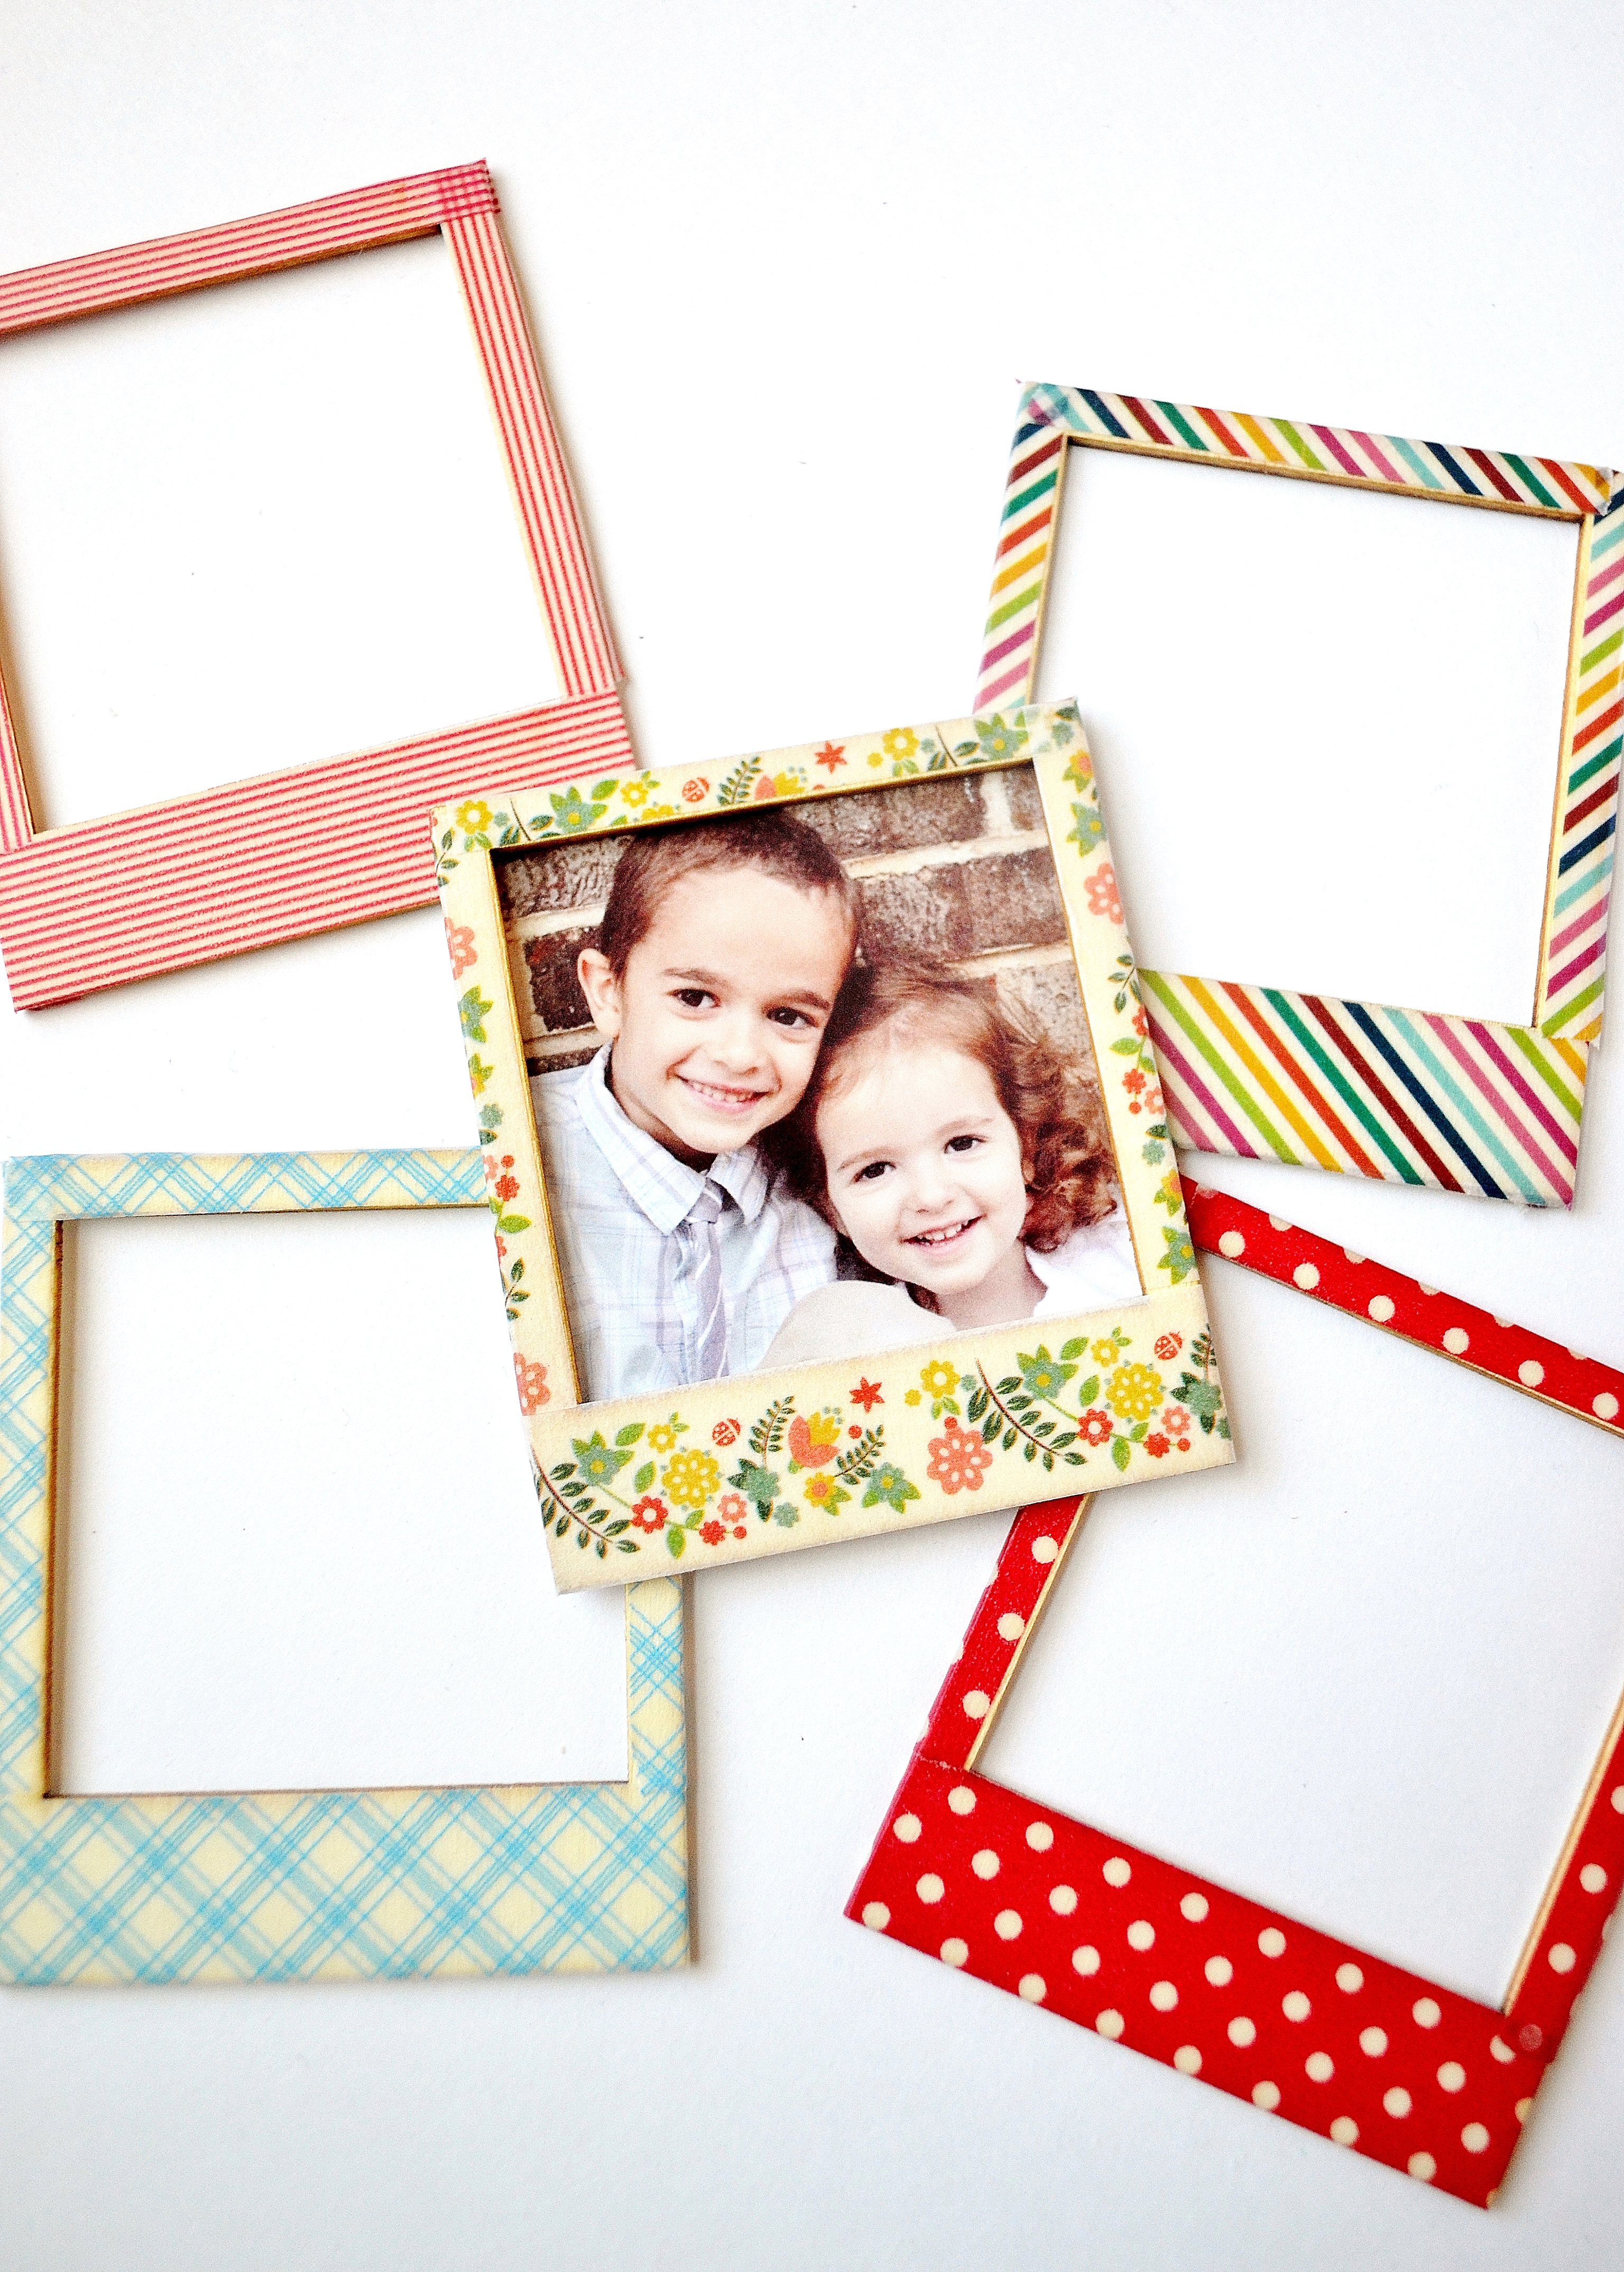 DIY wooden Polaroids decorated with washi tape